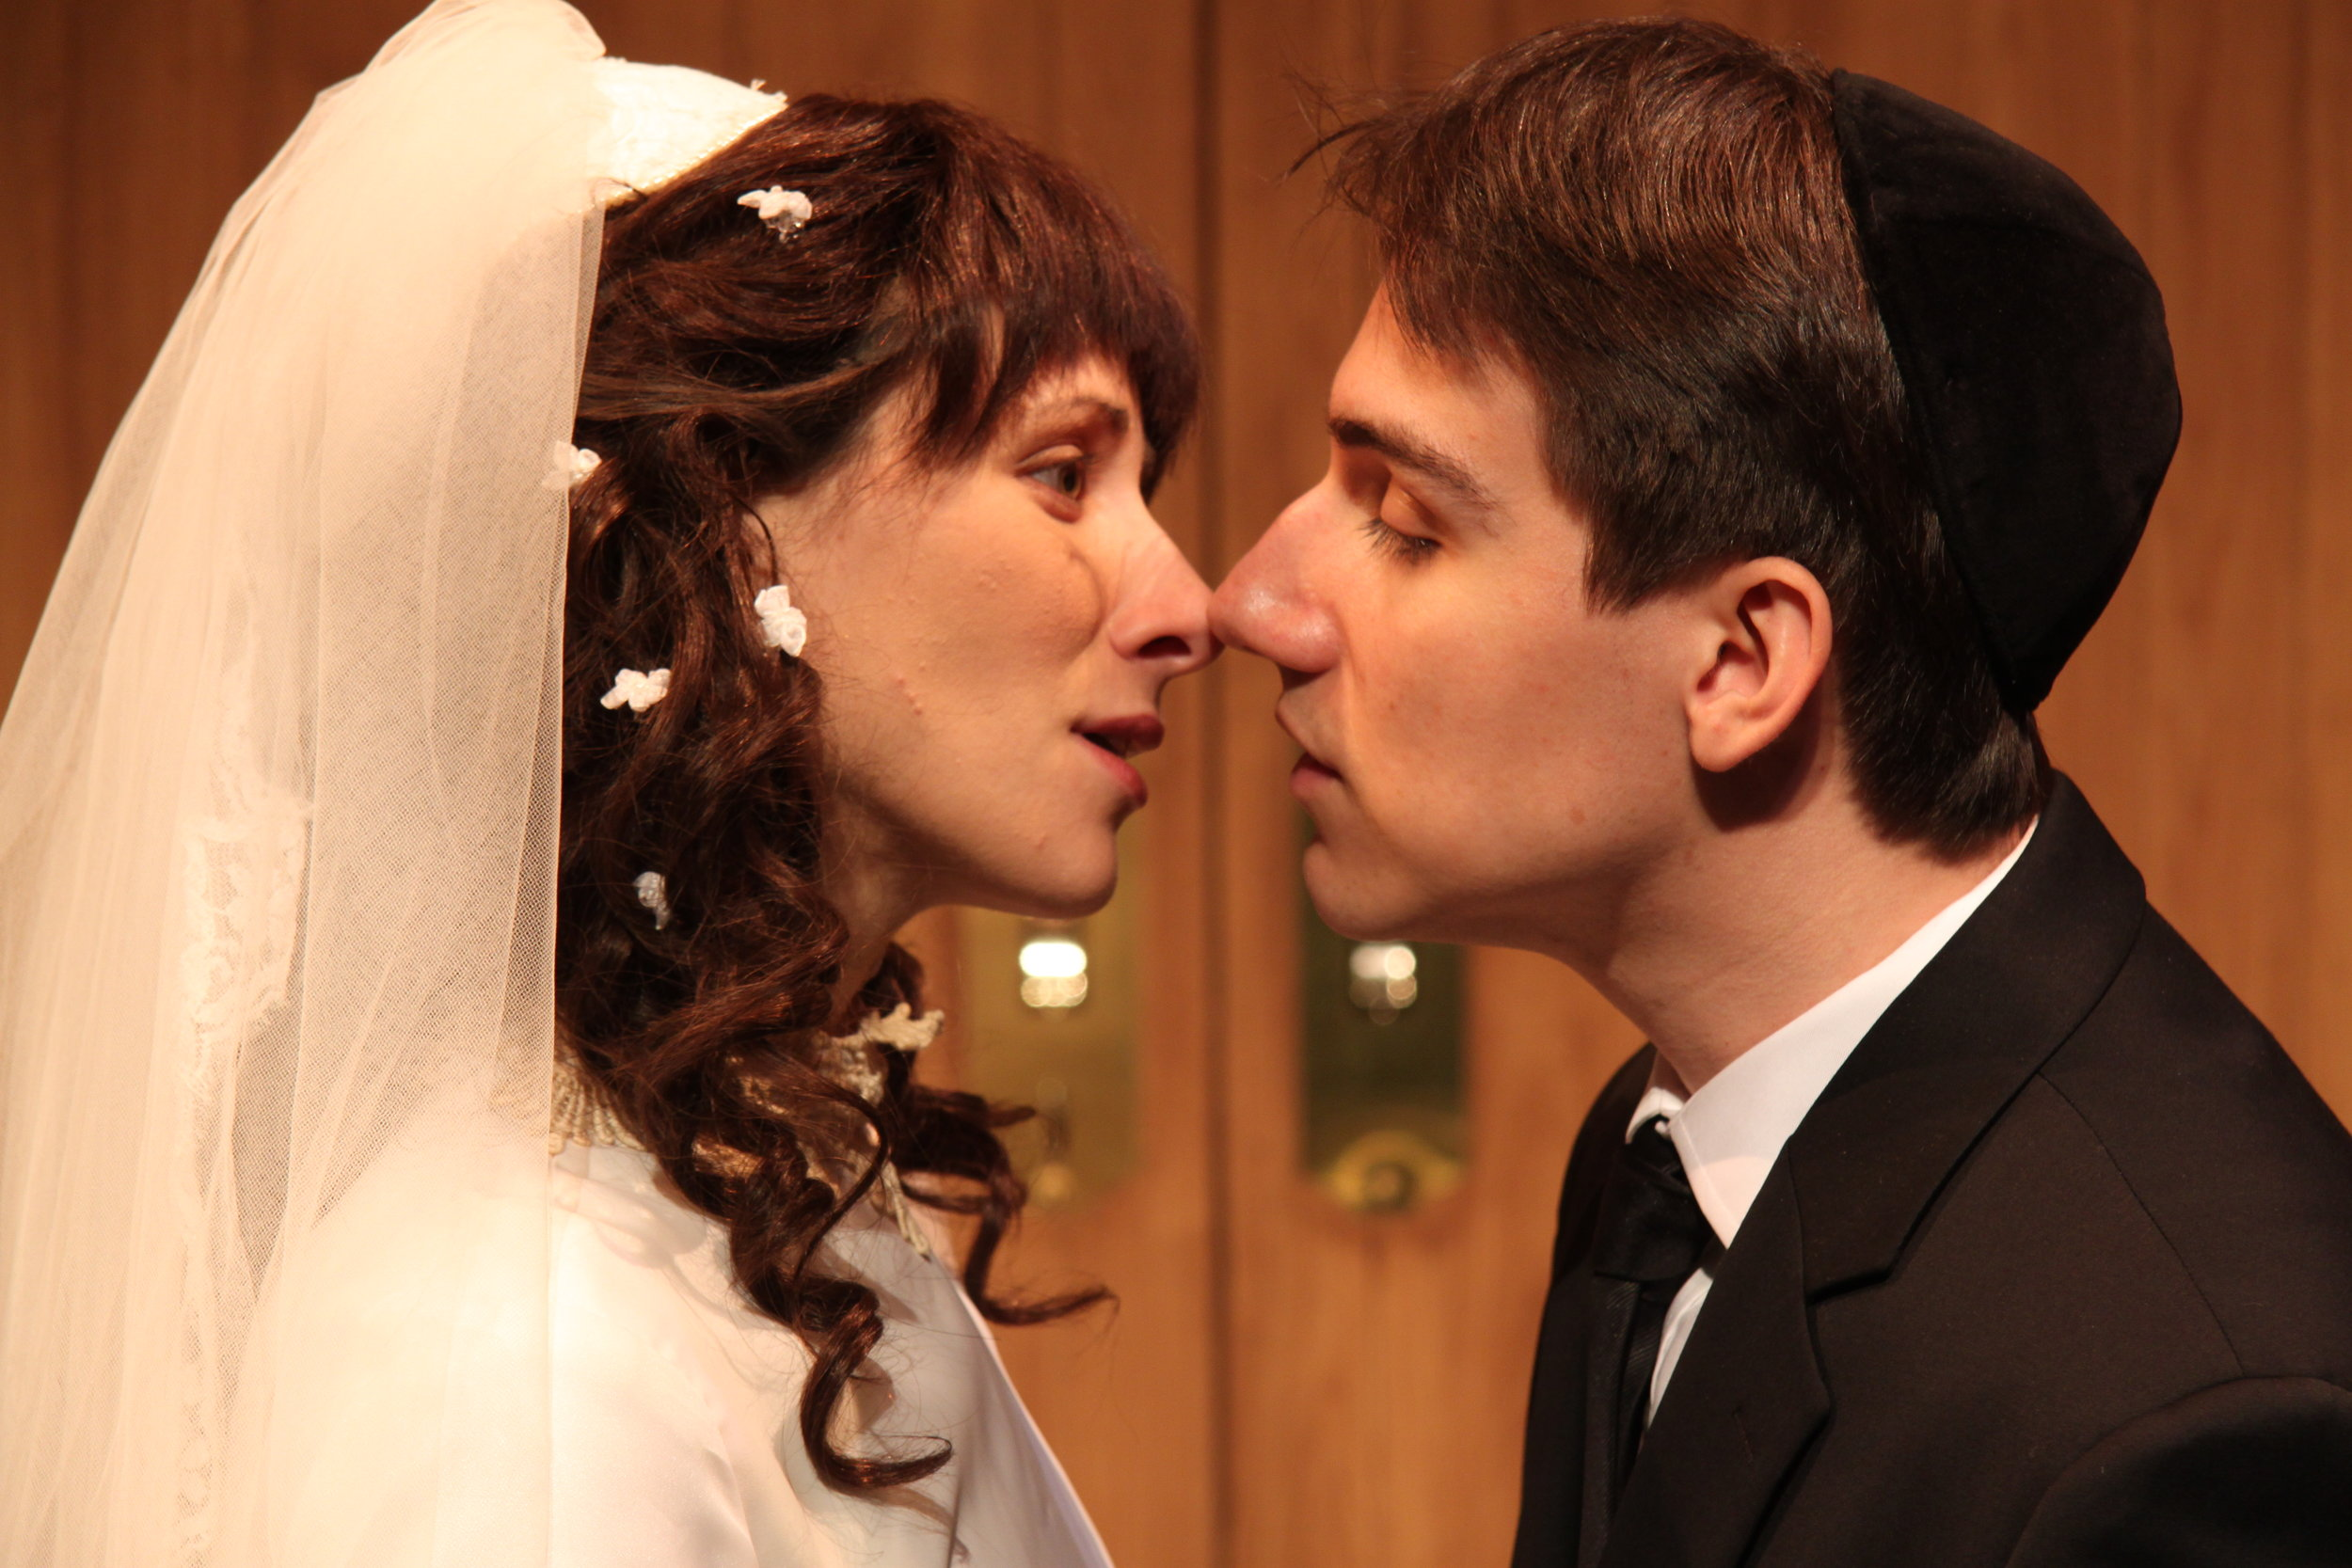 Julie Tepperman as Rachel and Aaron Willis as Chaim in YICHUD (Seclusion)